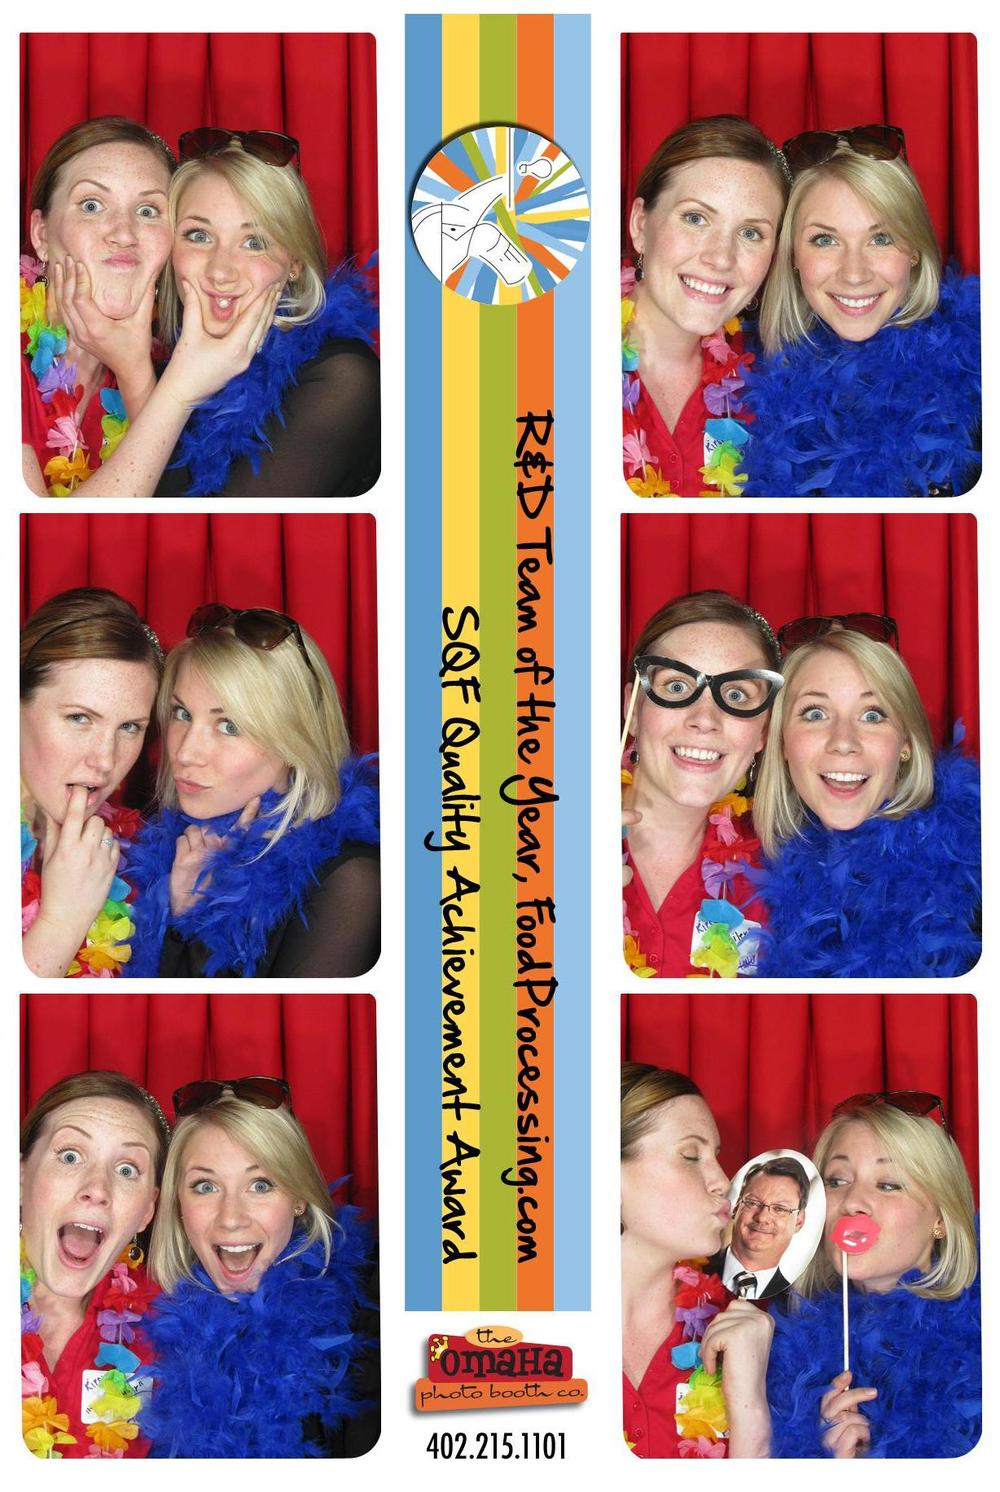 Corporate Party Photo Booth Rental Omaha